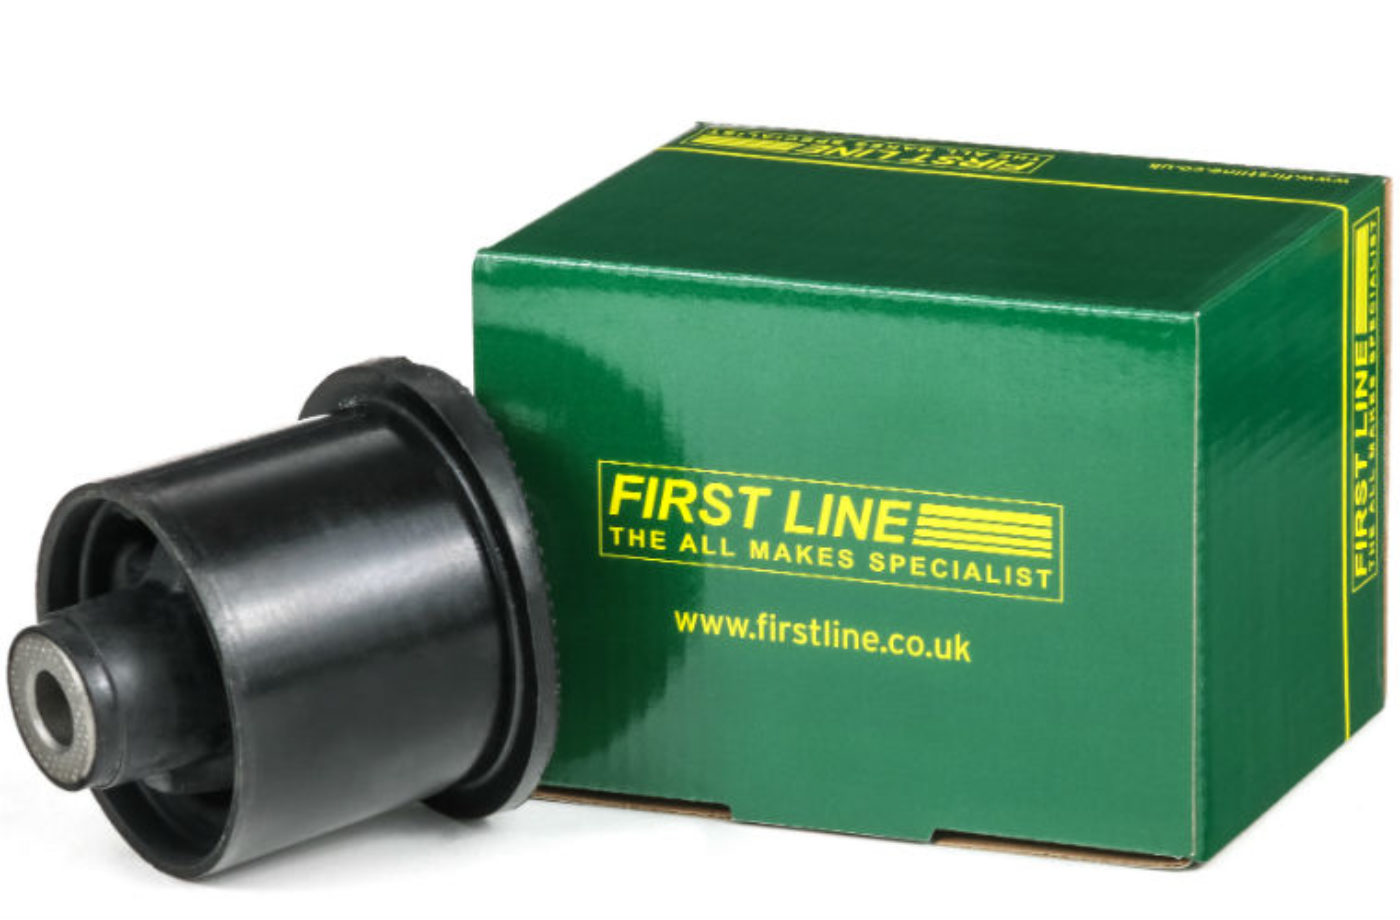 Subframe bushes available separately at First Line